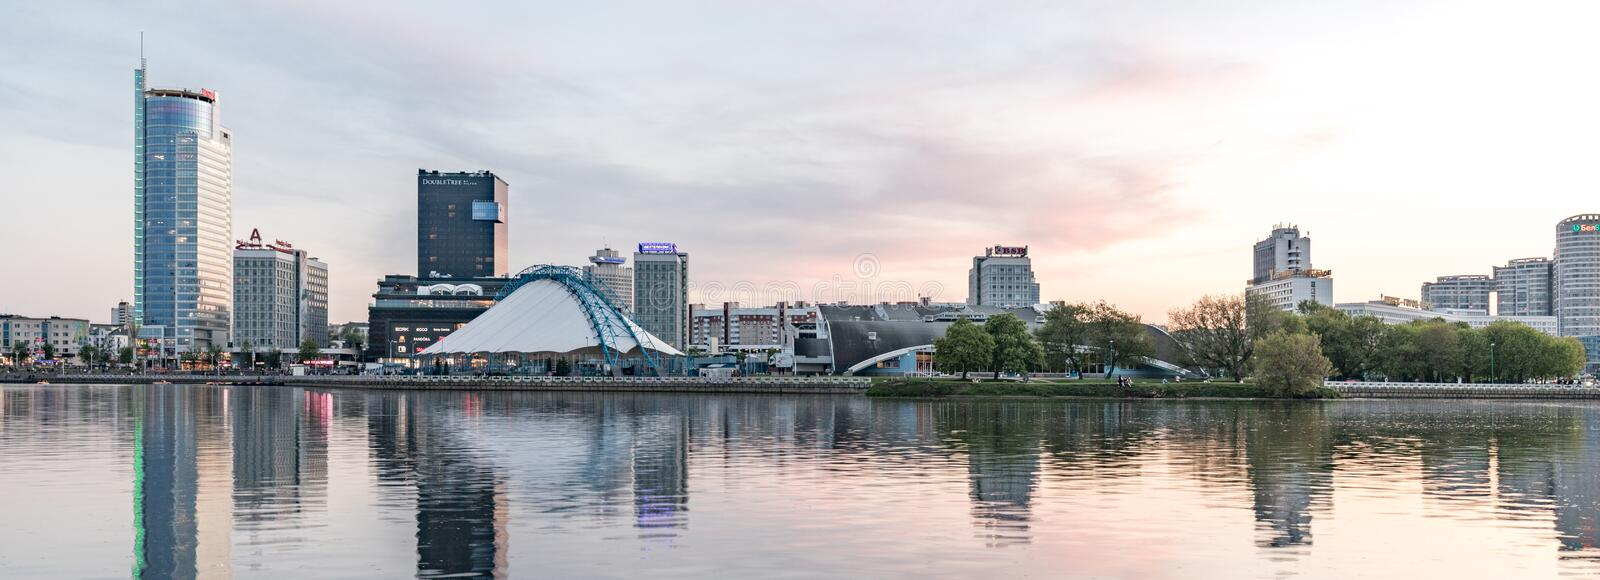 Embankment of the Svisloch River. Panorama of the city center at sunset. stock image